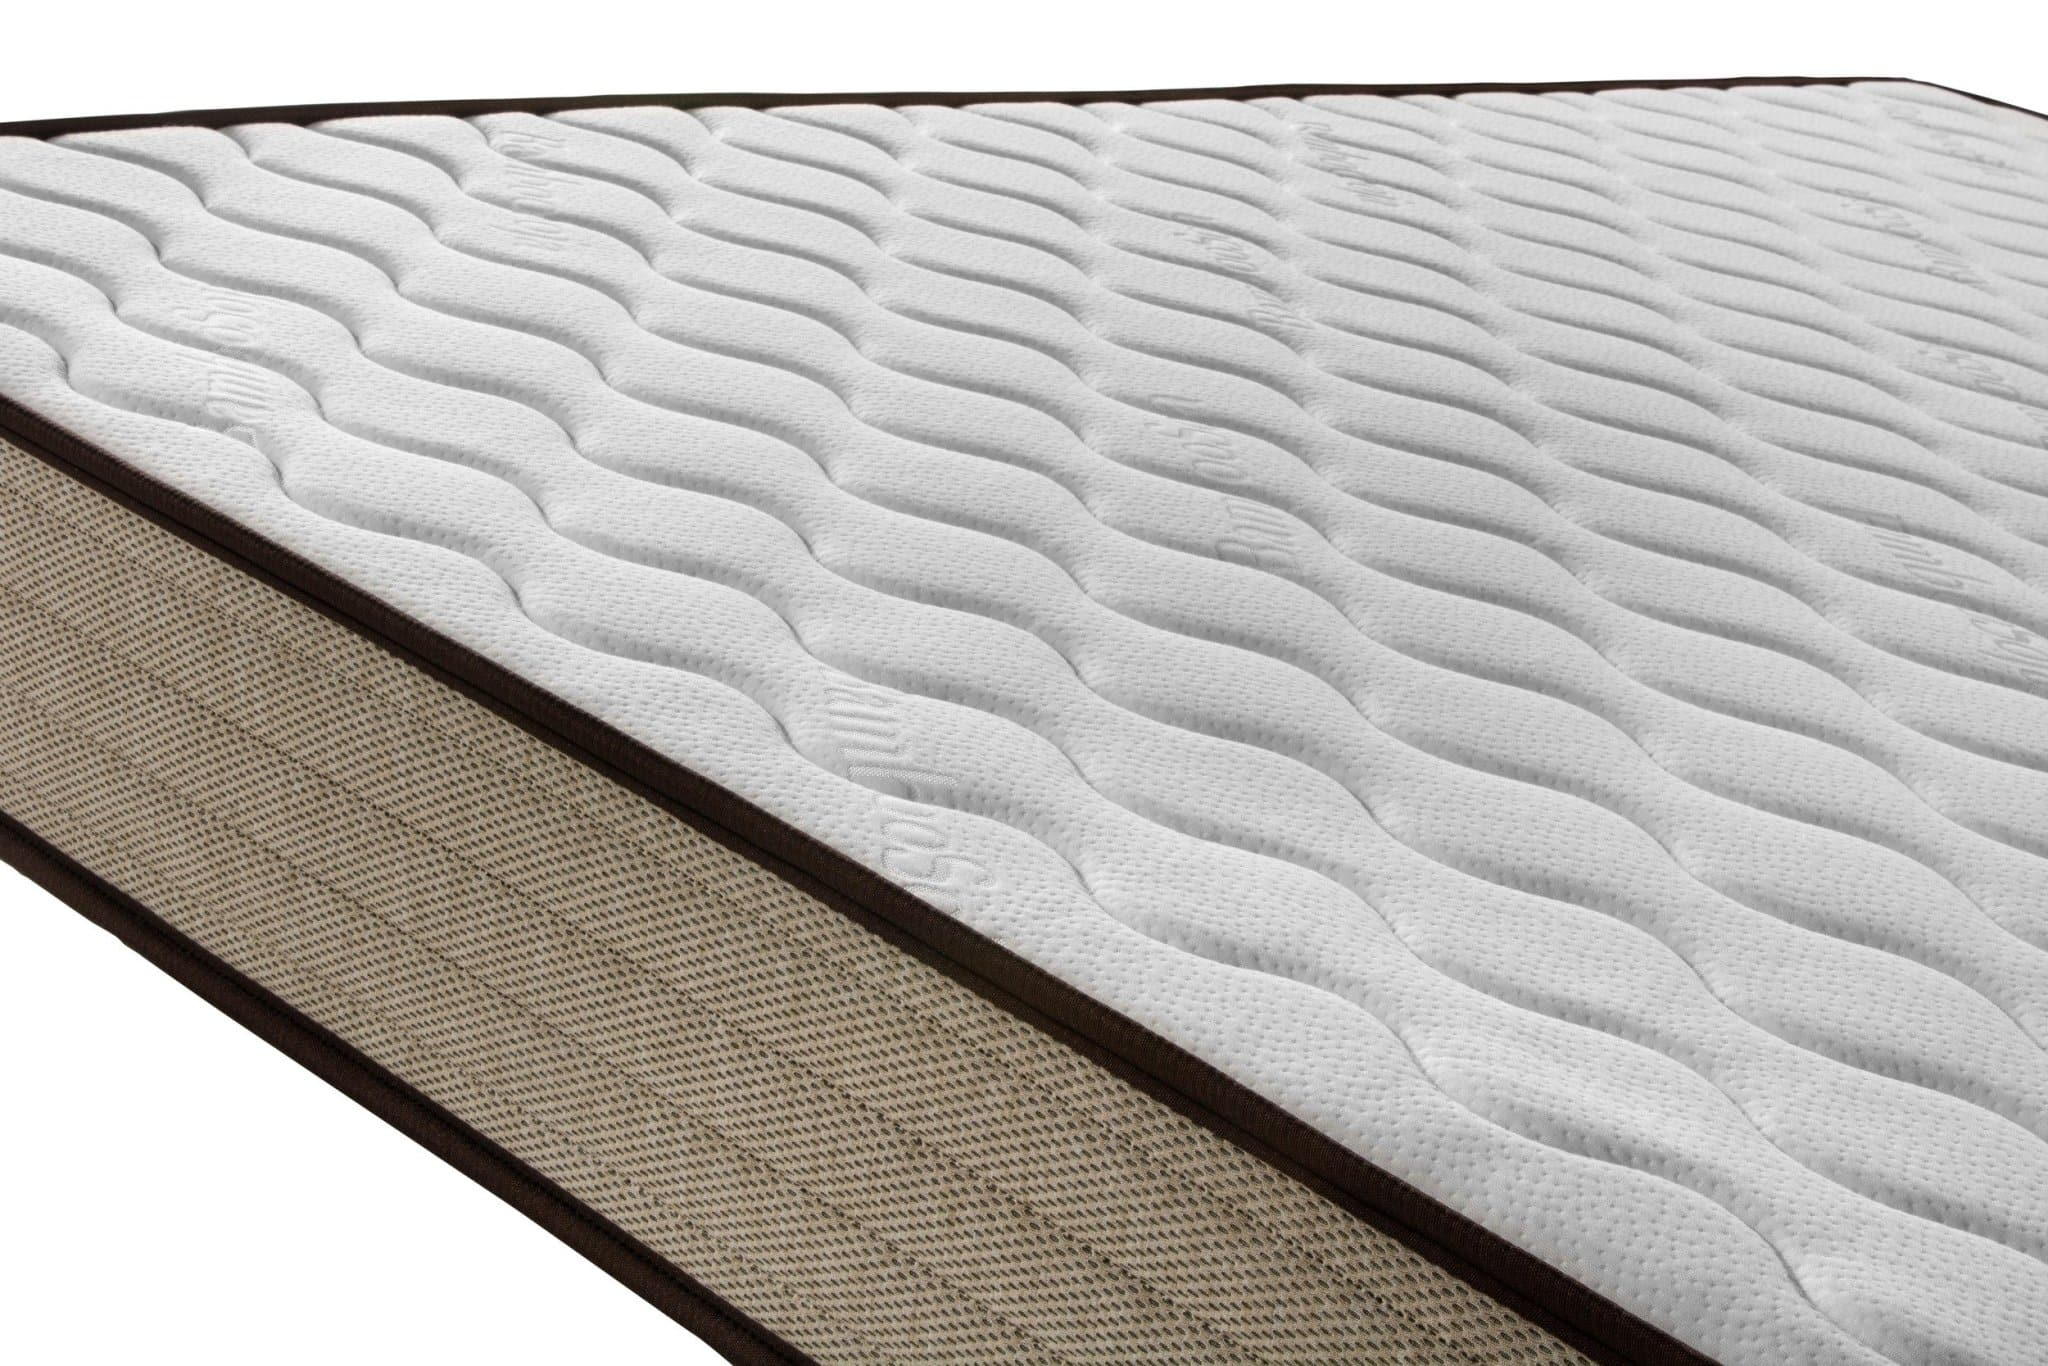 Bambou Deluxe - BEZEN MATTRESS AND HEALTH